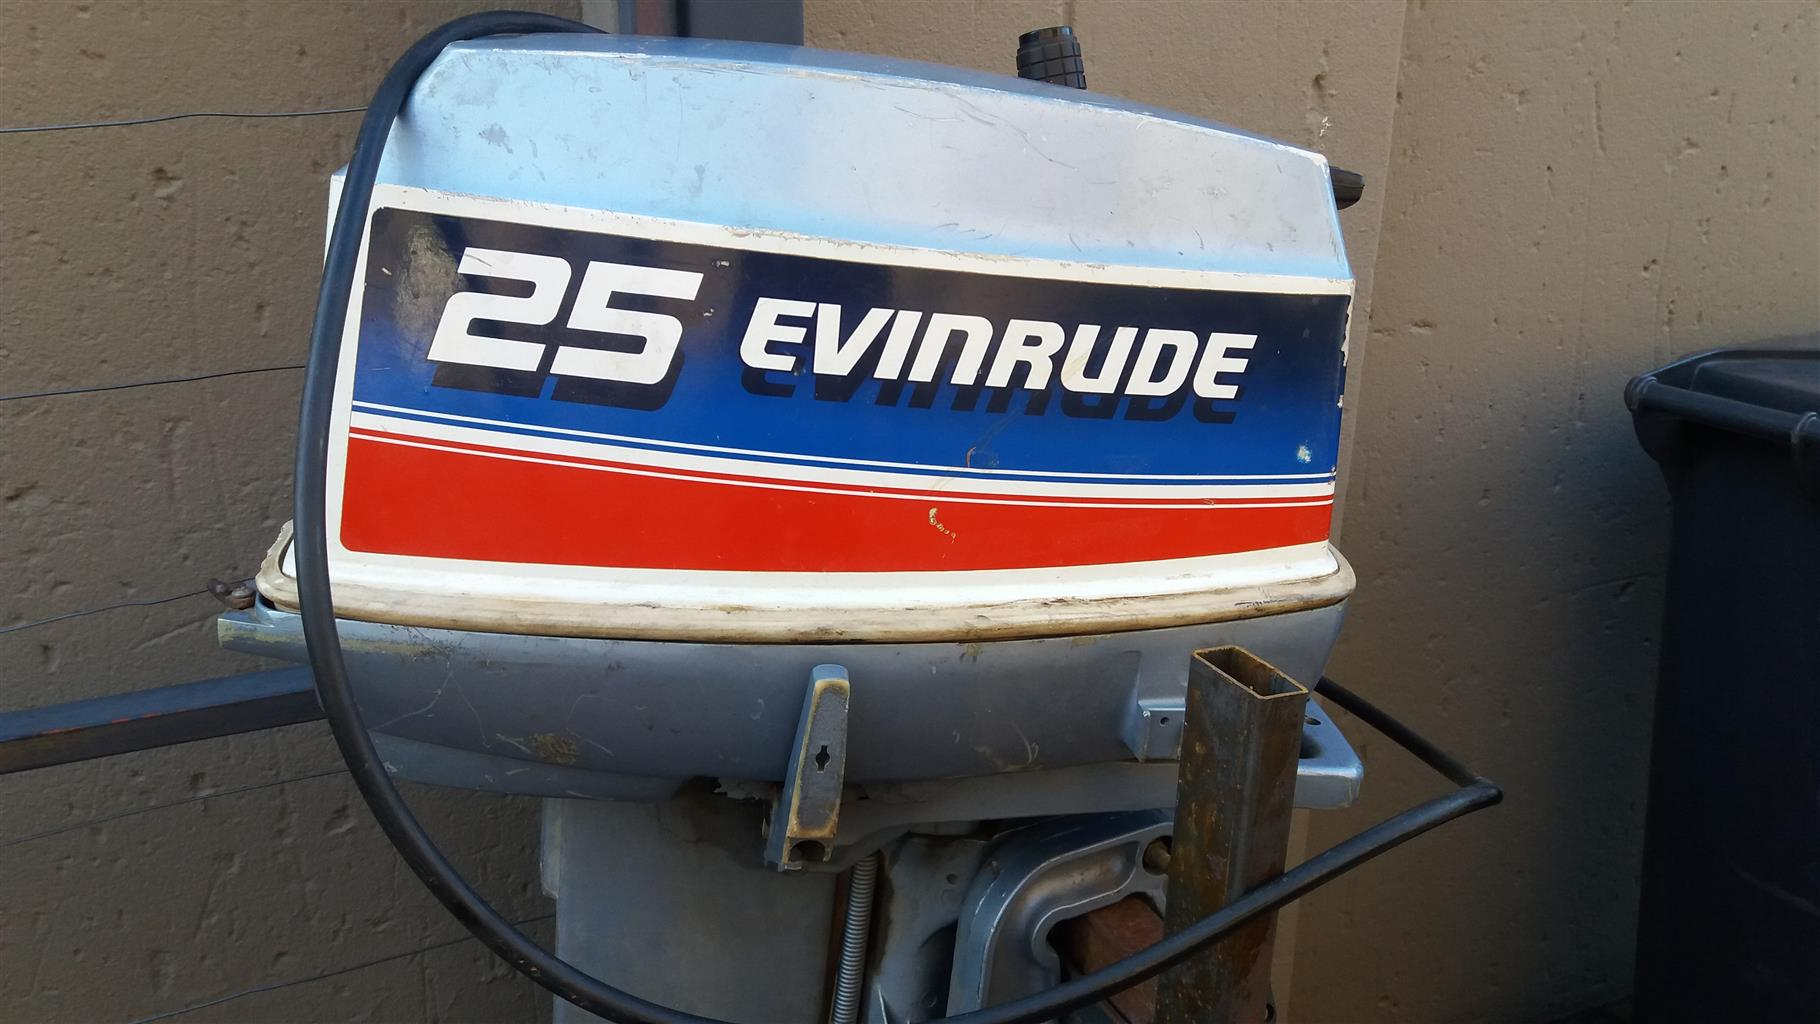 25 Hp Evinrude For Sale >> 25 Hp Evinrude Boat Engine For Sale Junk Mail